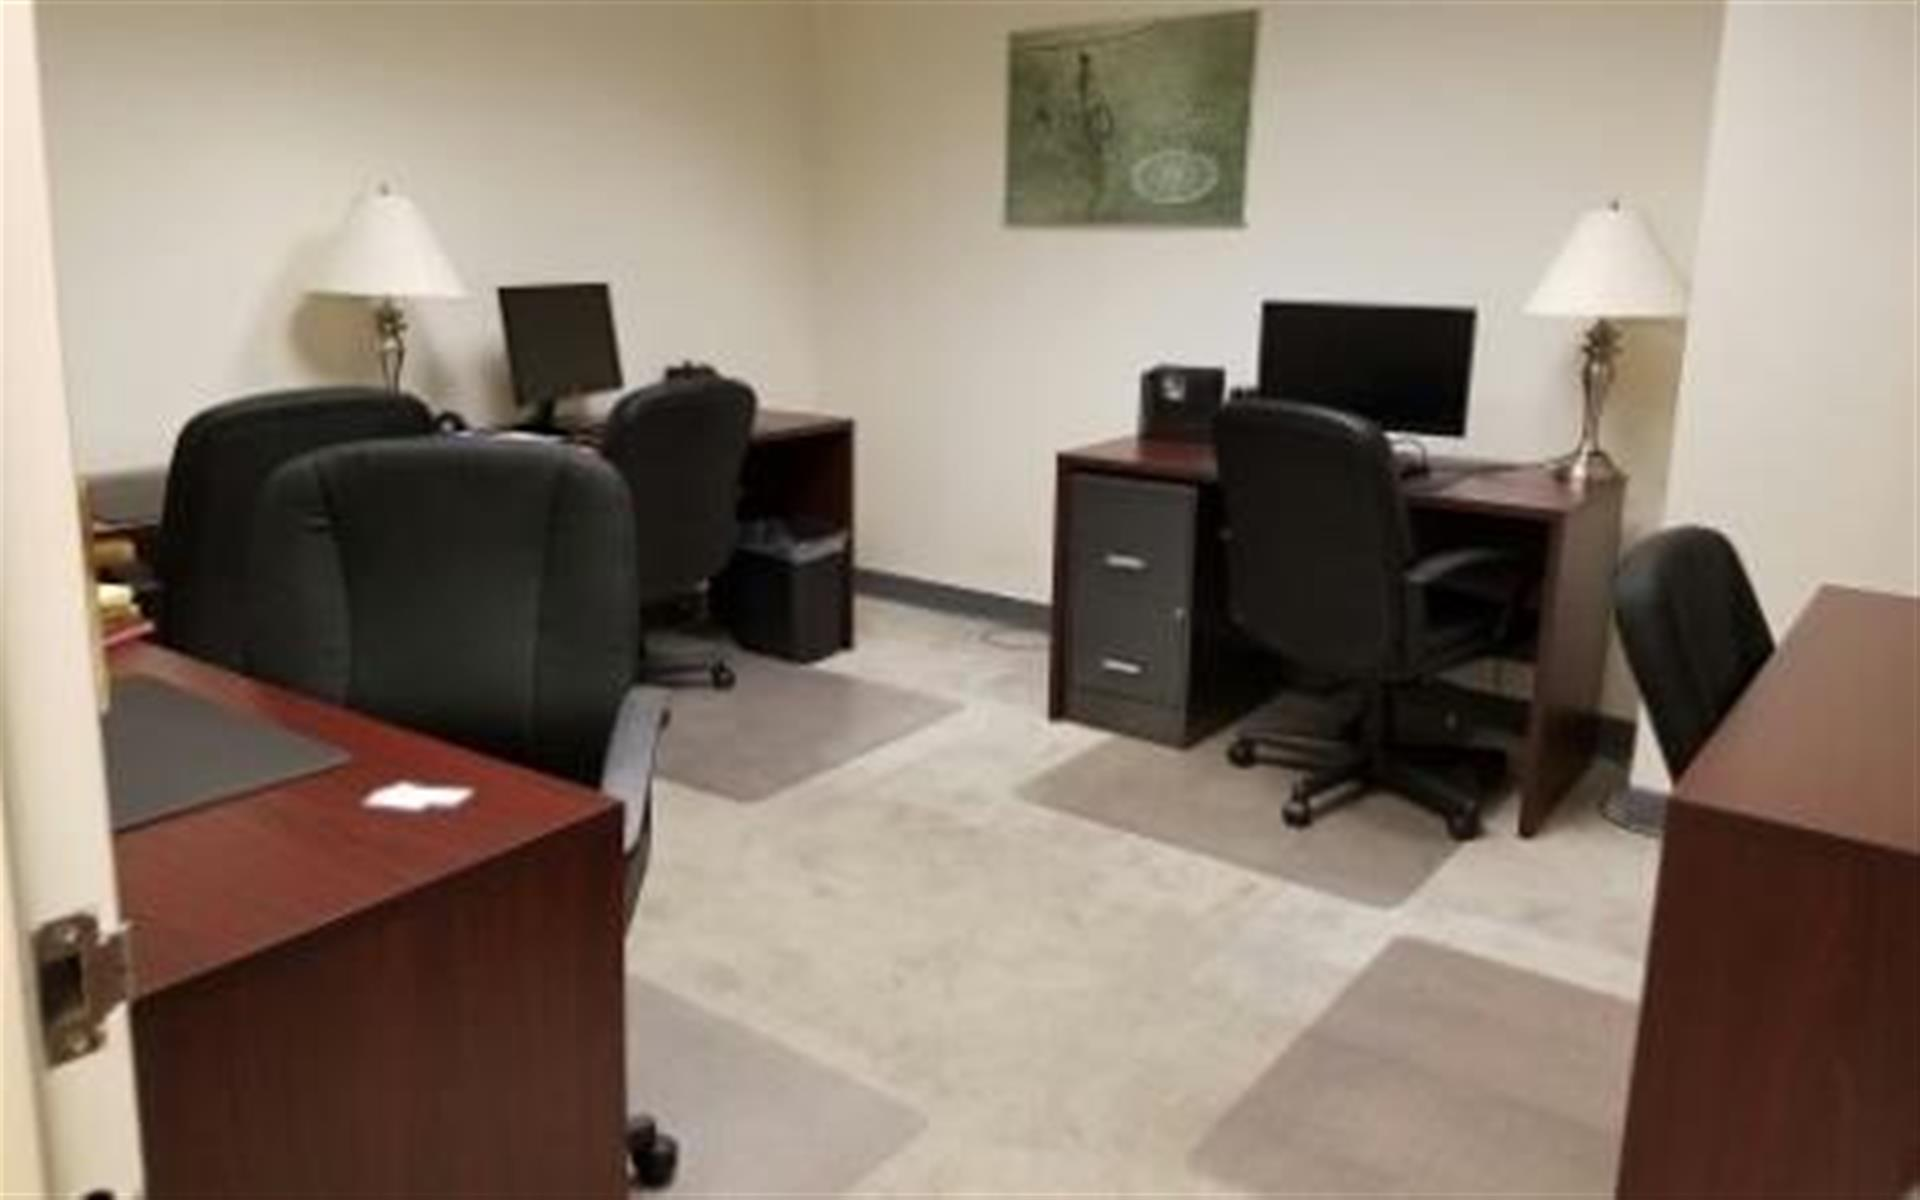 NYC Office Suites 708 (3rd Ave. & 44th) - Flexible Private Office Space 708 for 2